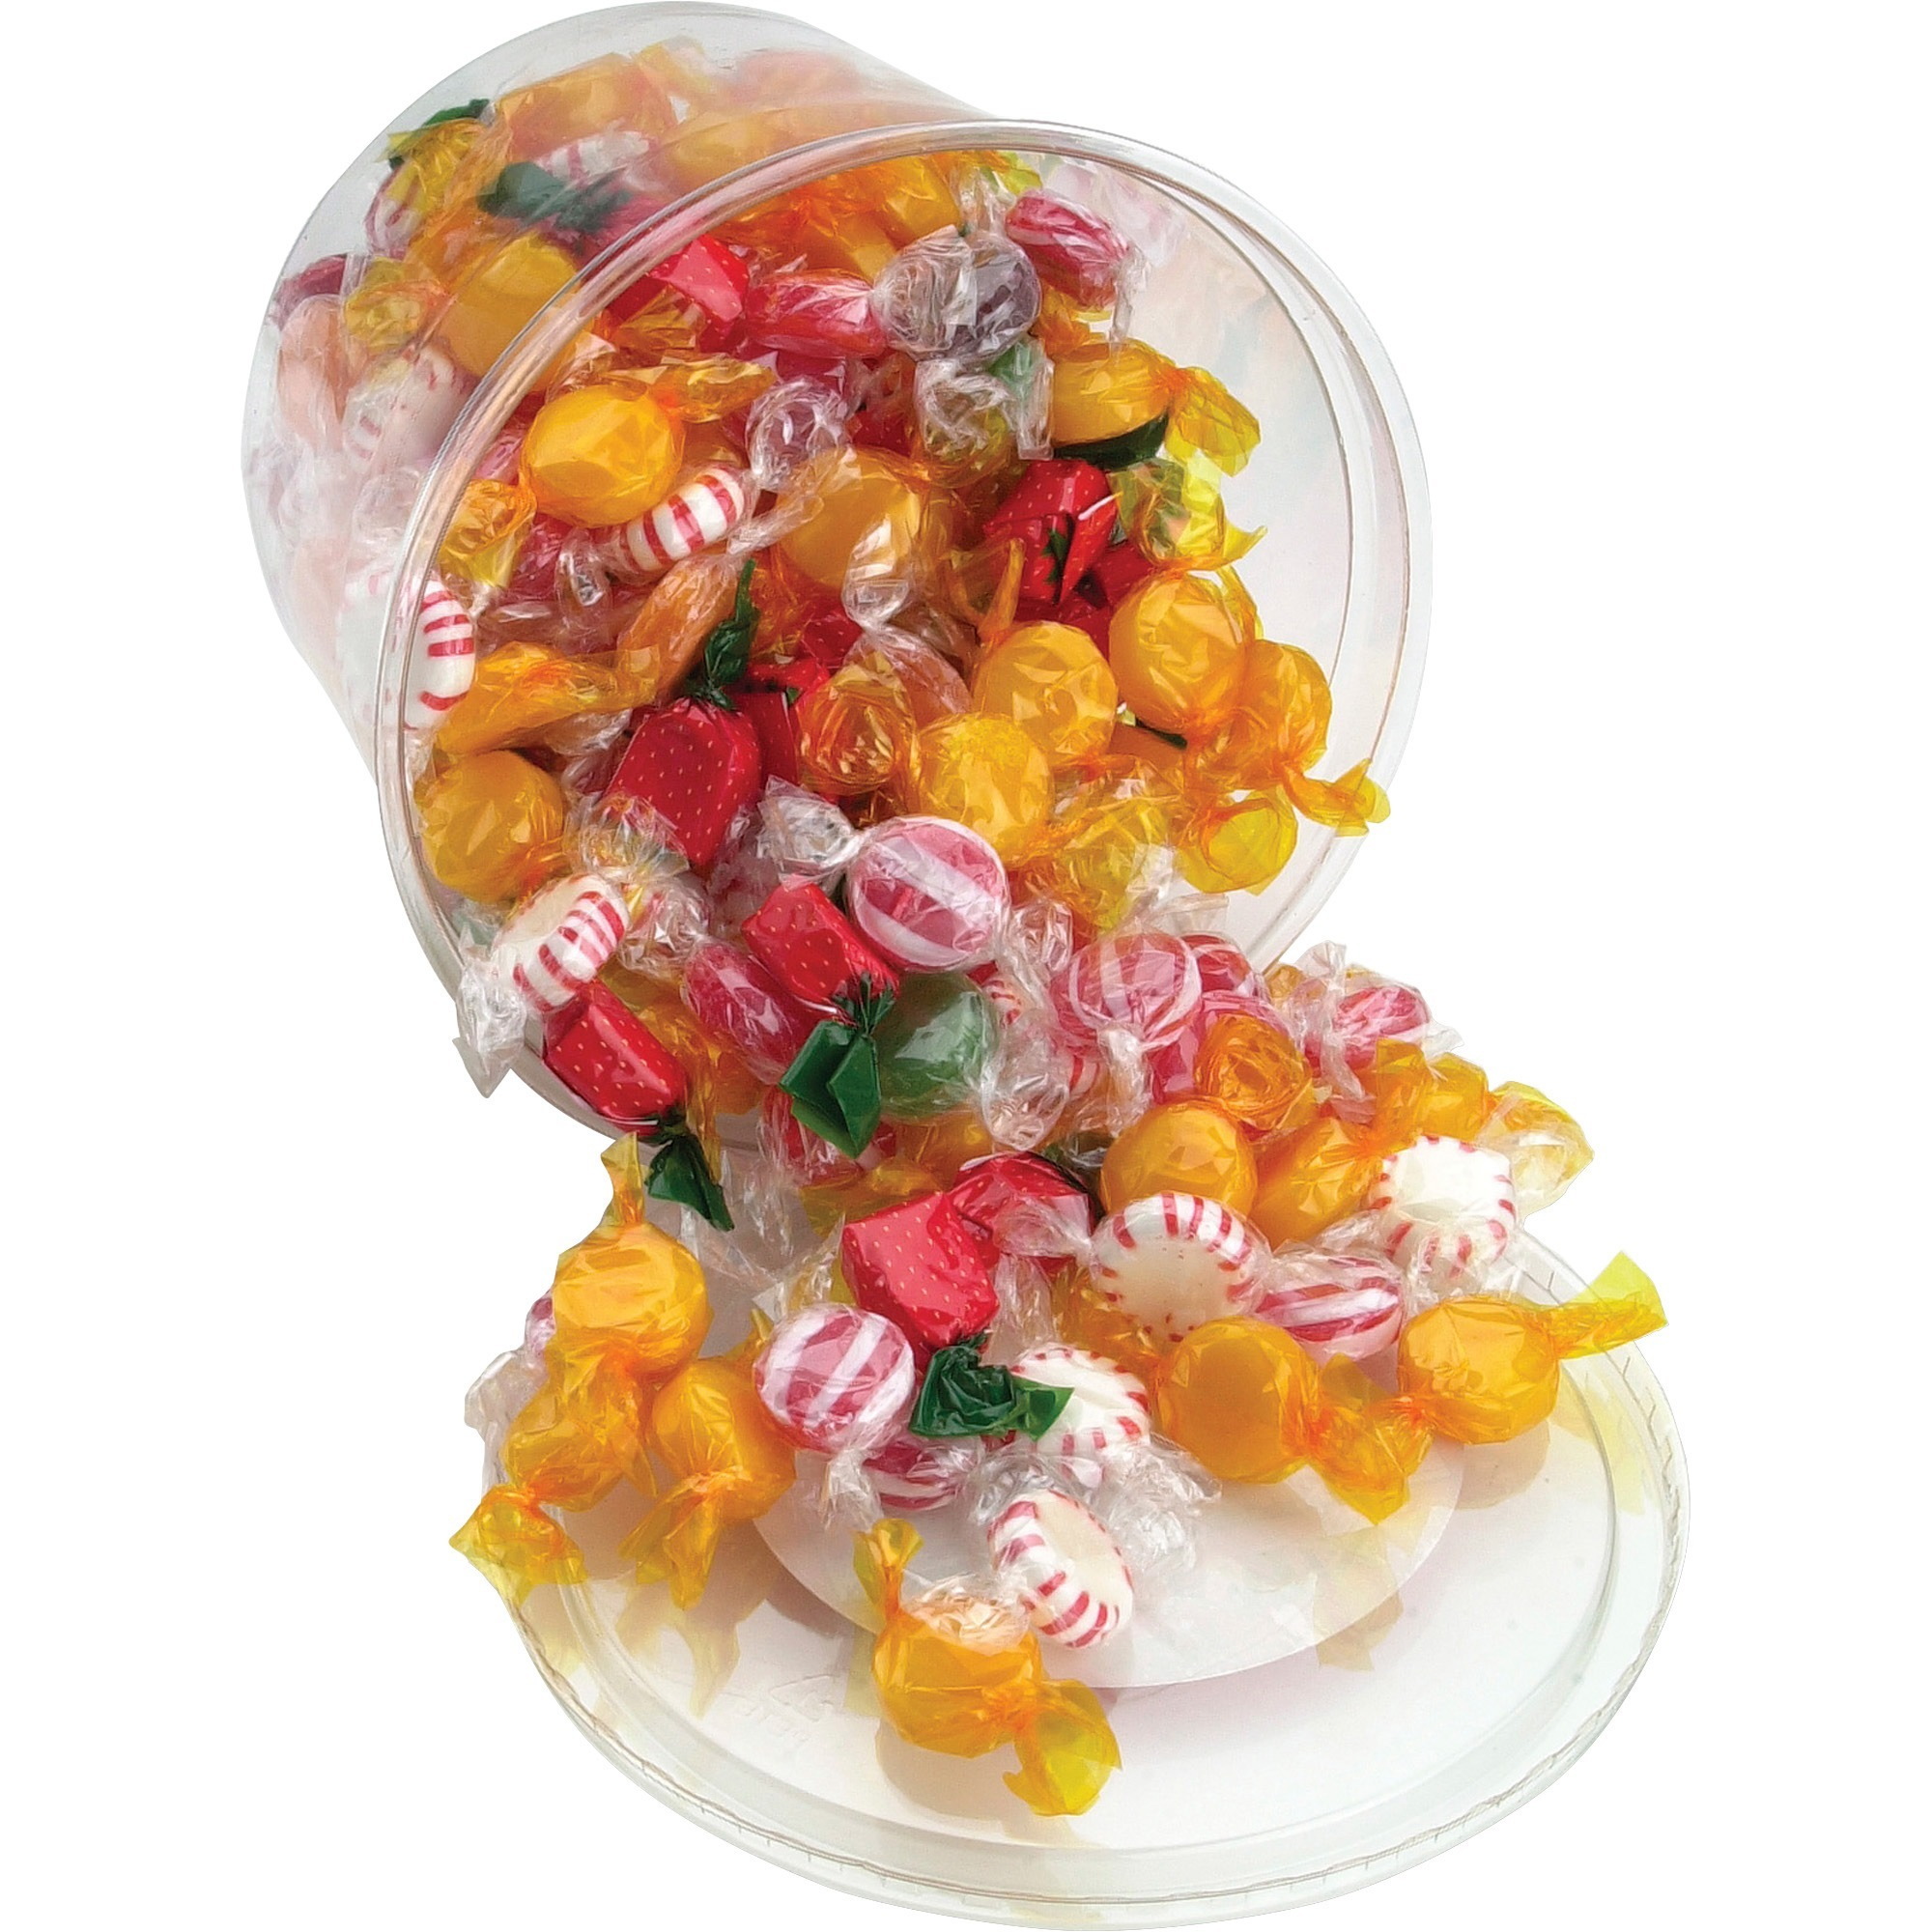 fancy office supplies. Office Snax Fancy Mix Hard Candy Tub - Resealable Container, Individually Wrapped 907.2 G 1 EachCanister Supplies D